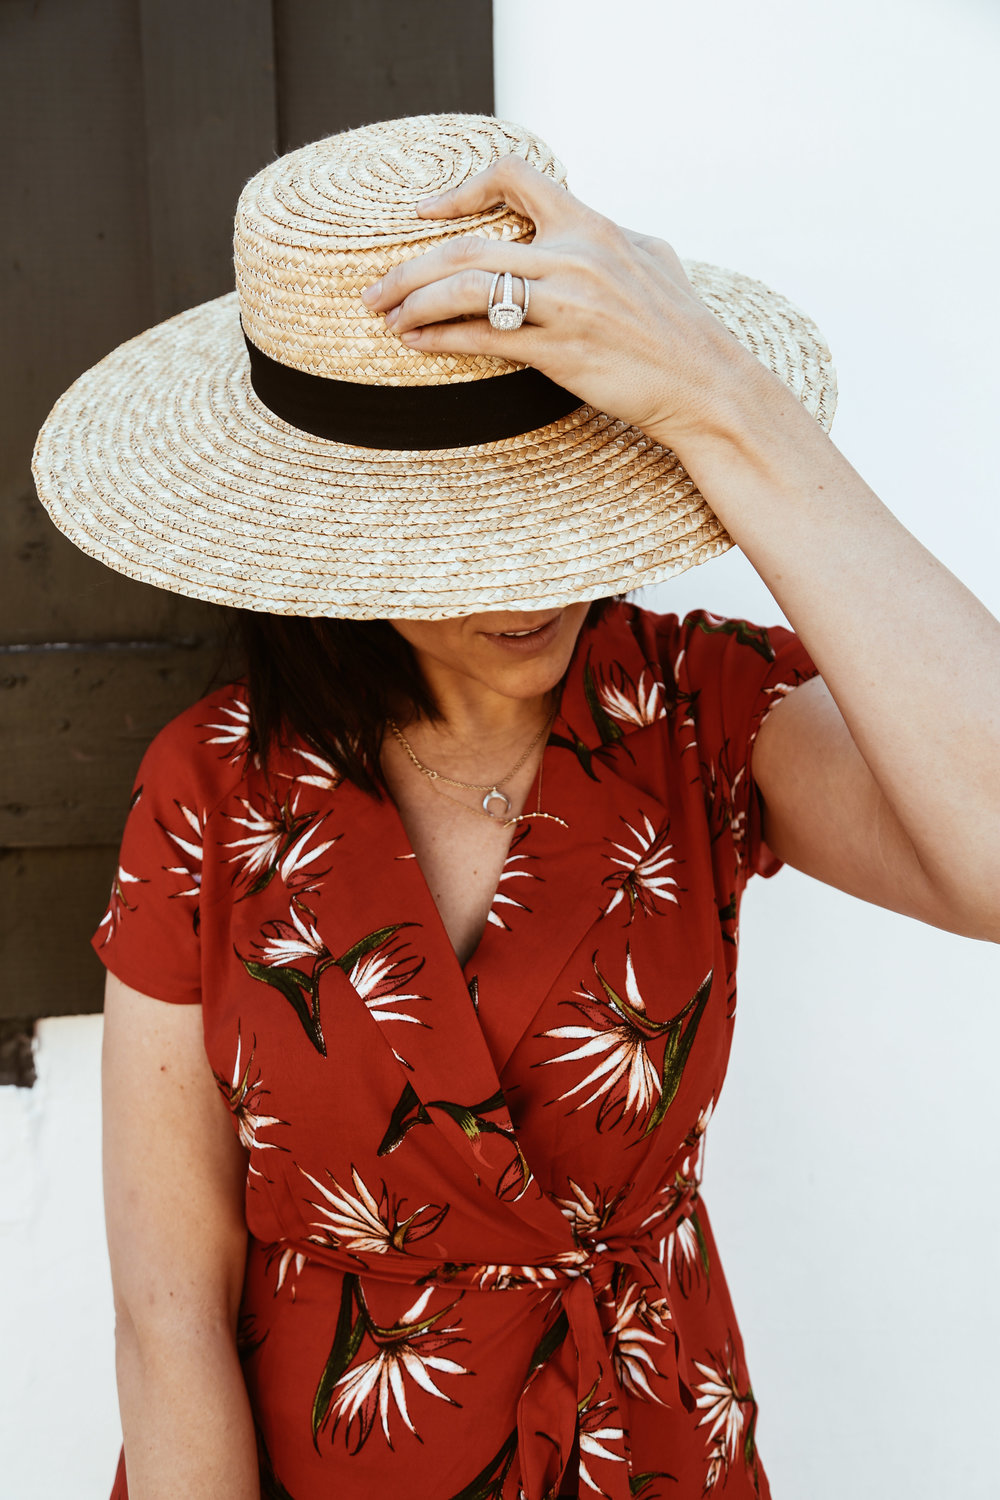 straw hat and red dress.jpg